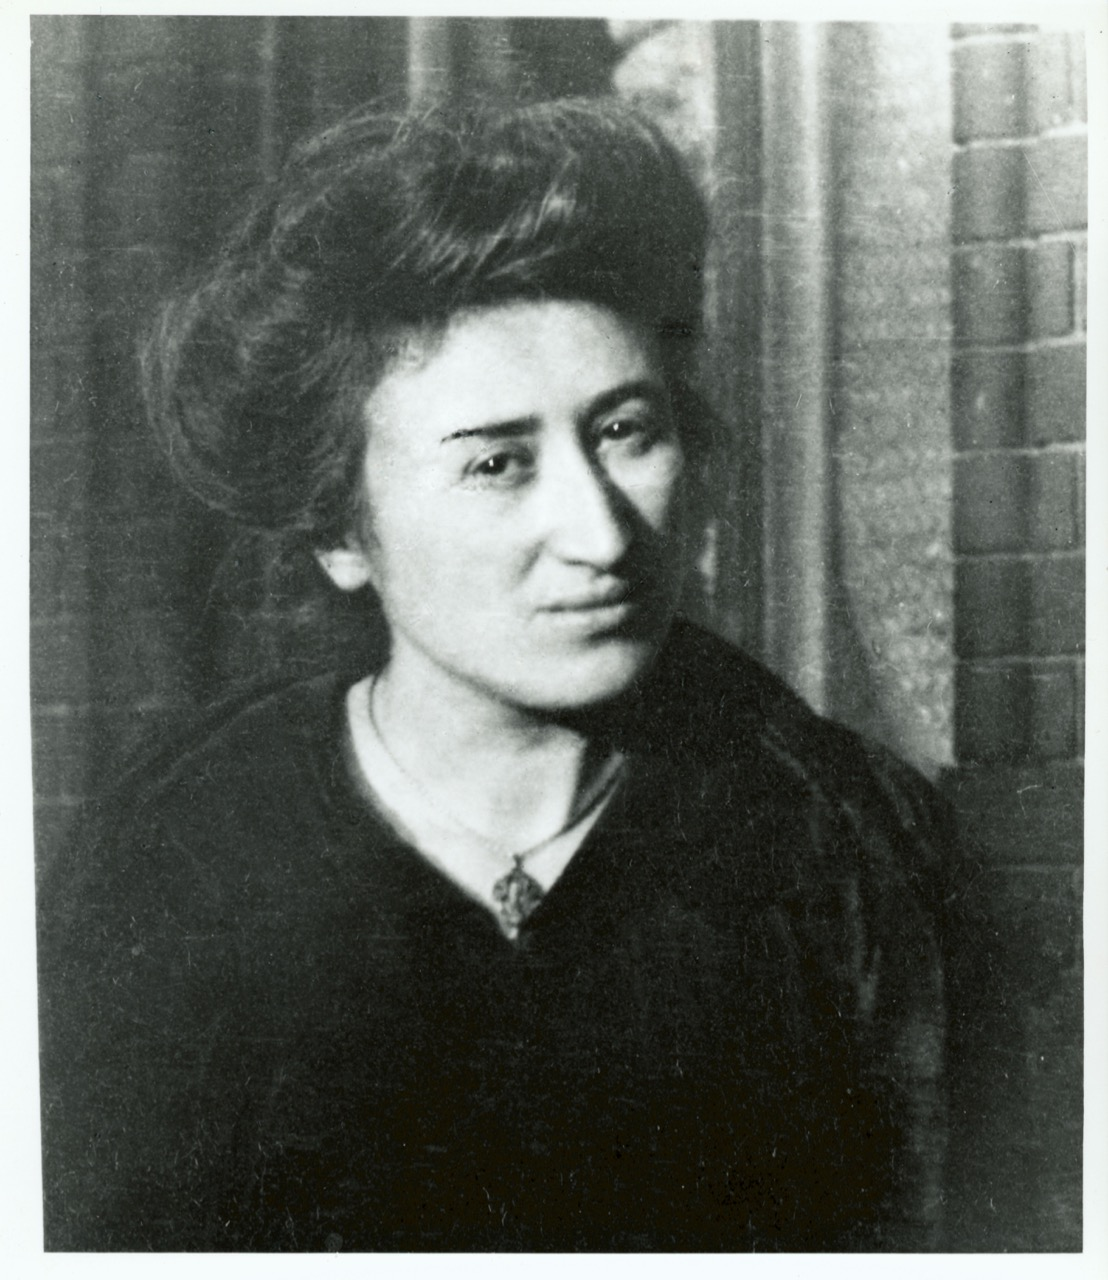 1907 or 1908 maybe rosa luxemburg rls 1